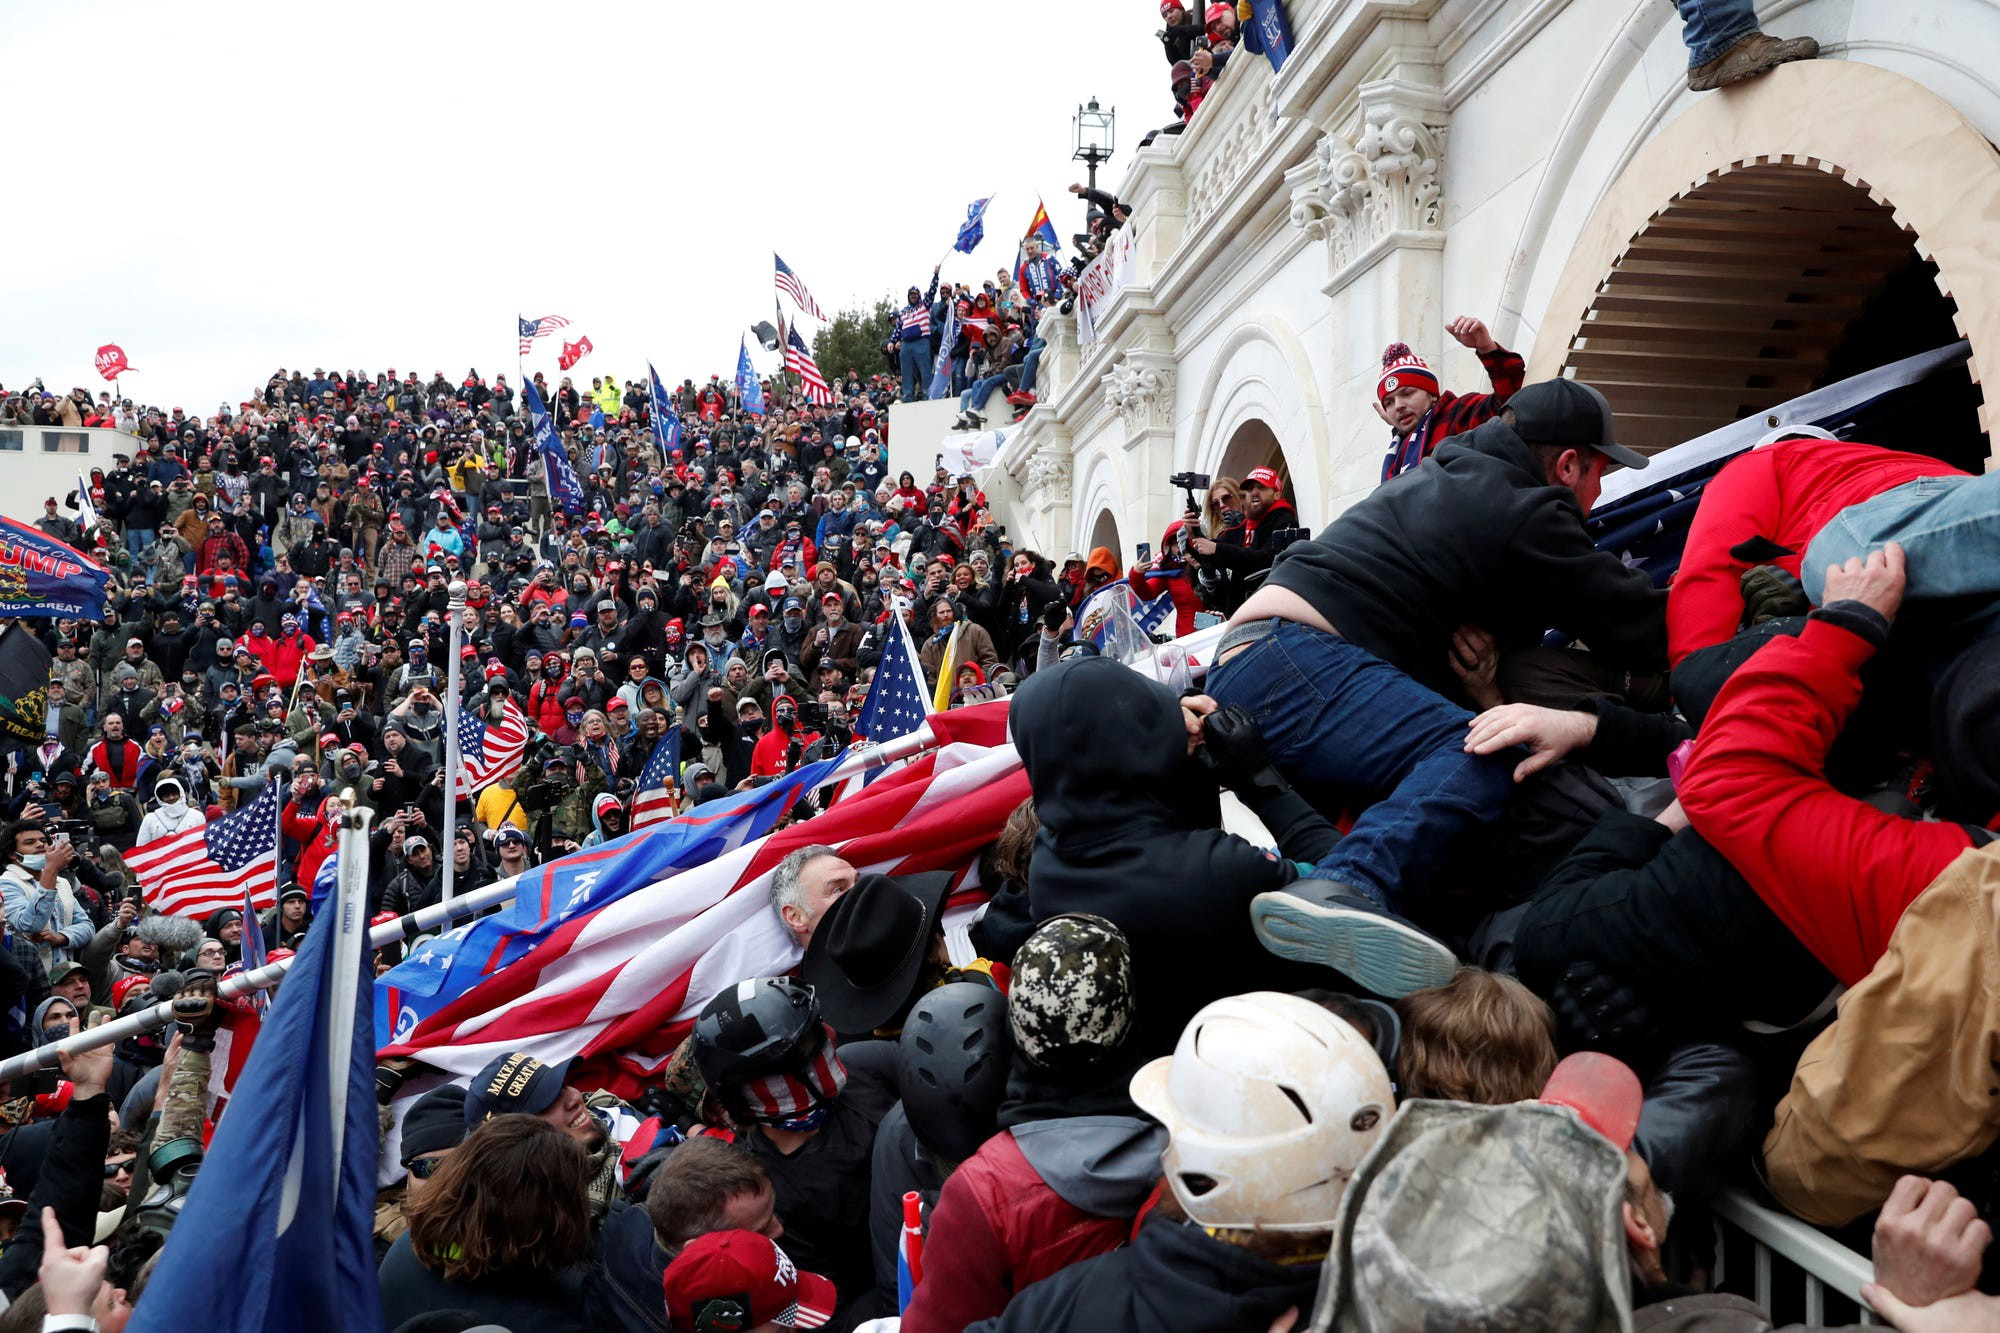 Pro-Trump protesters storm into the U.S. Capitol on Jan. 6, 2021.